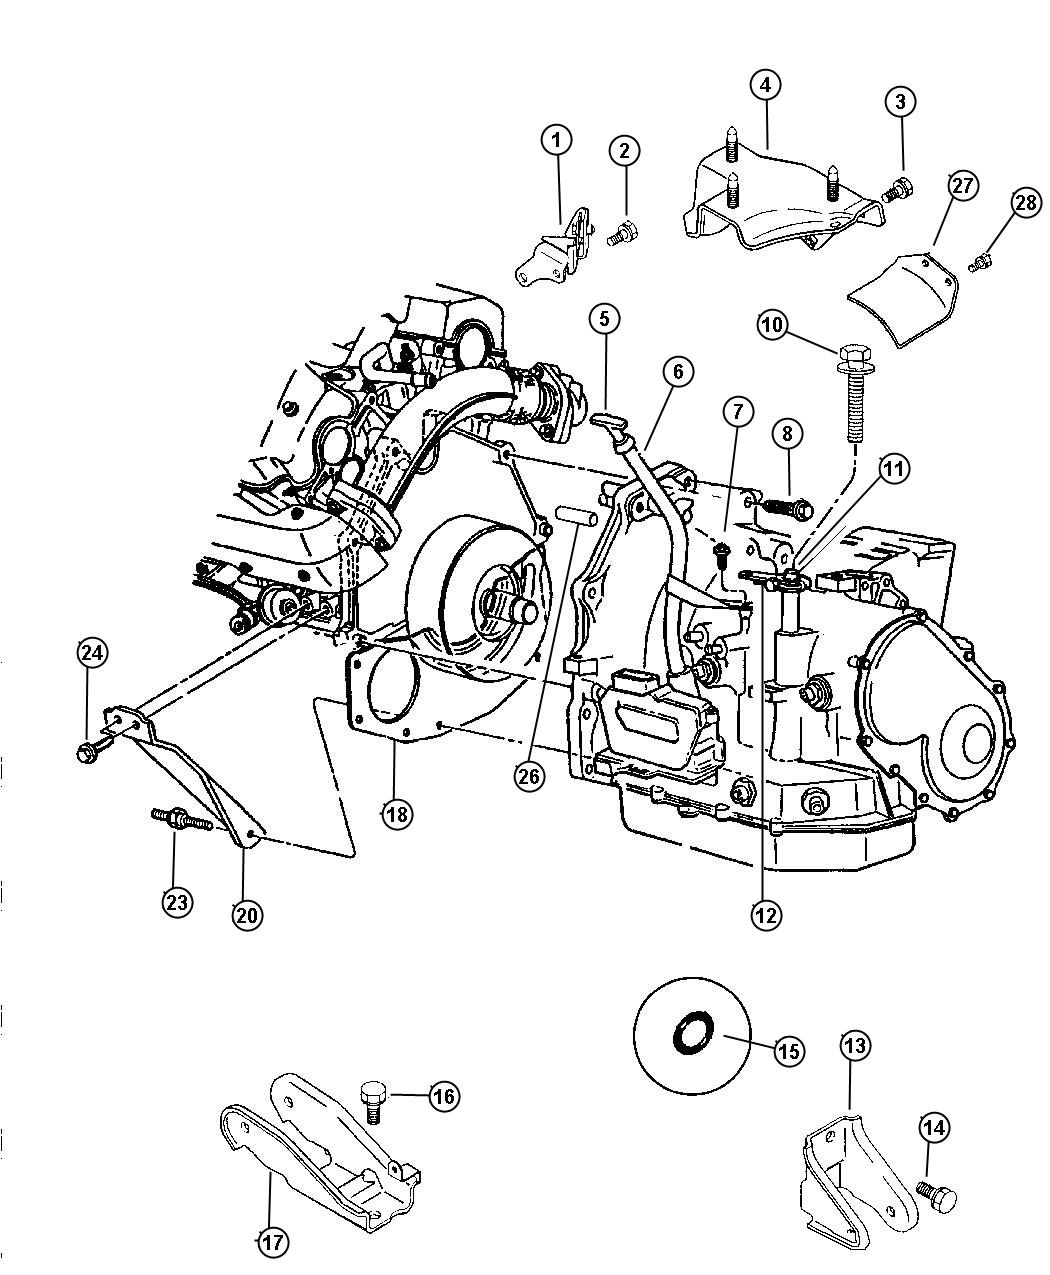 a606 transmission diagram